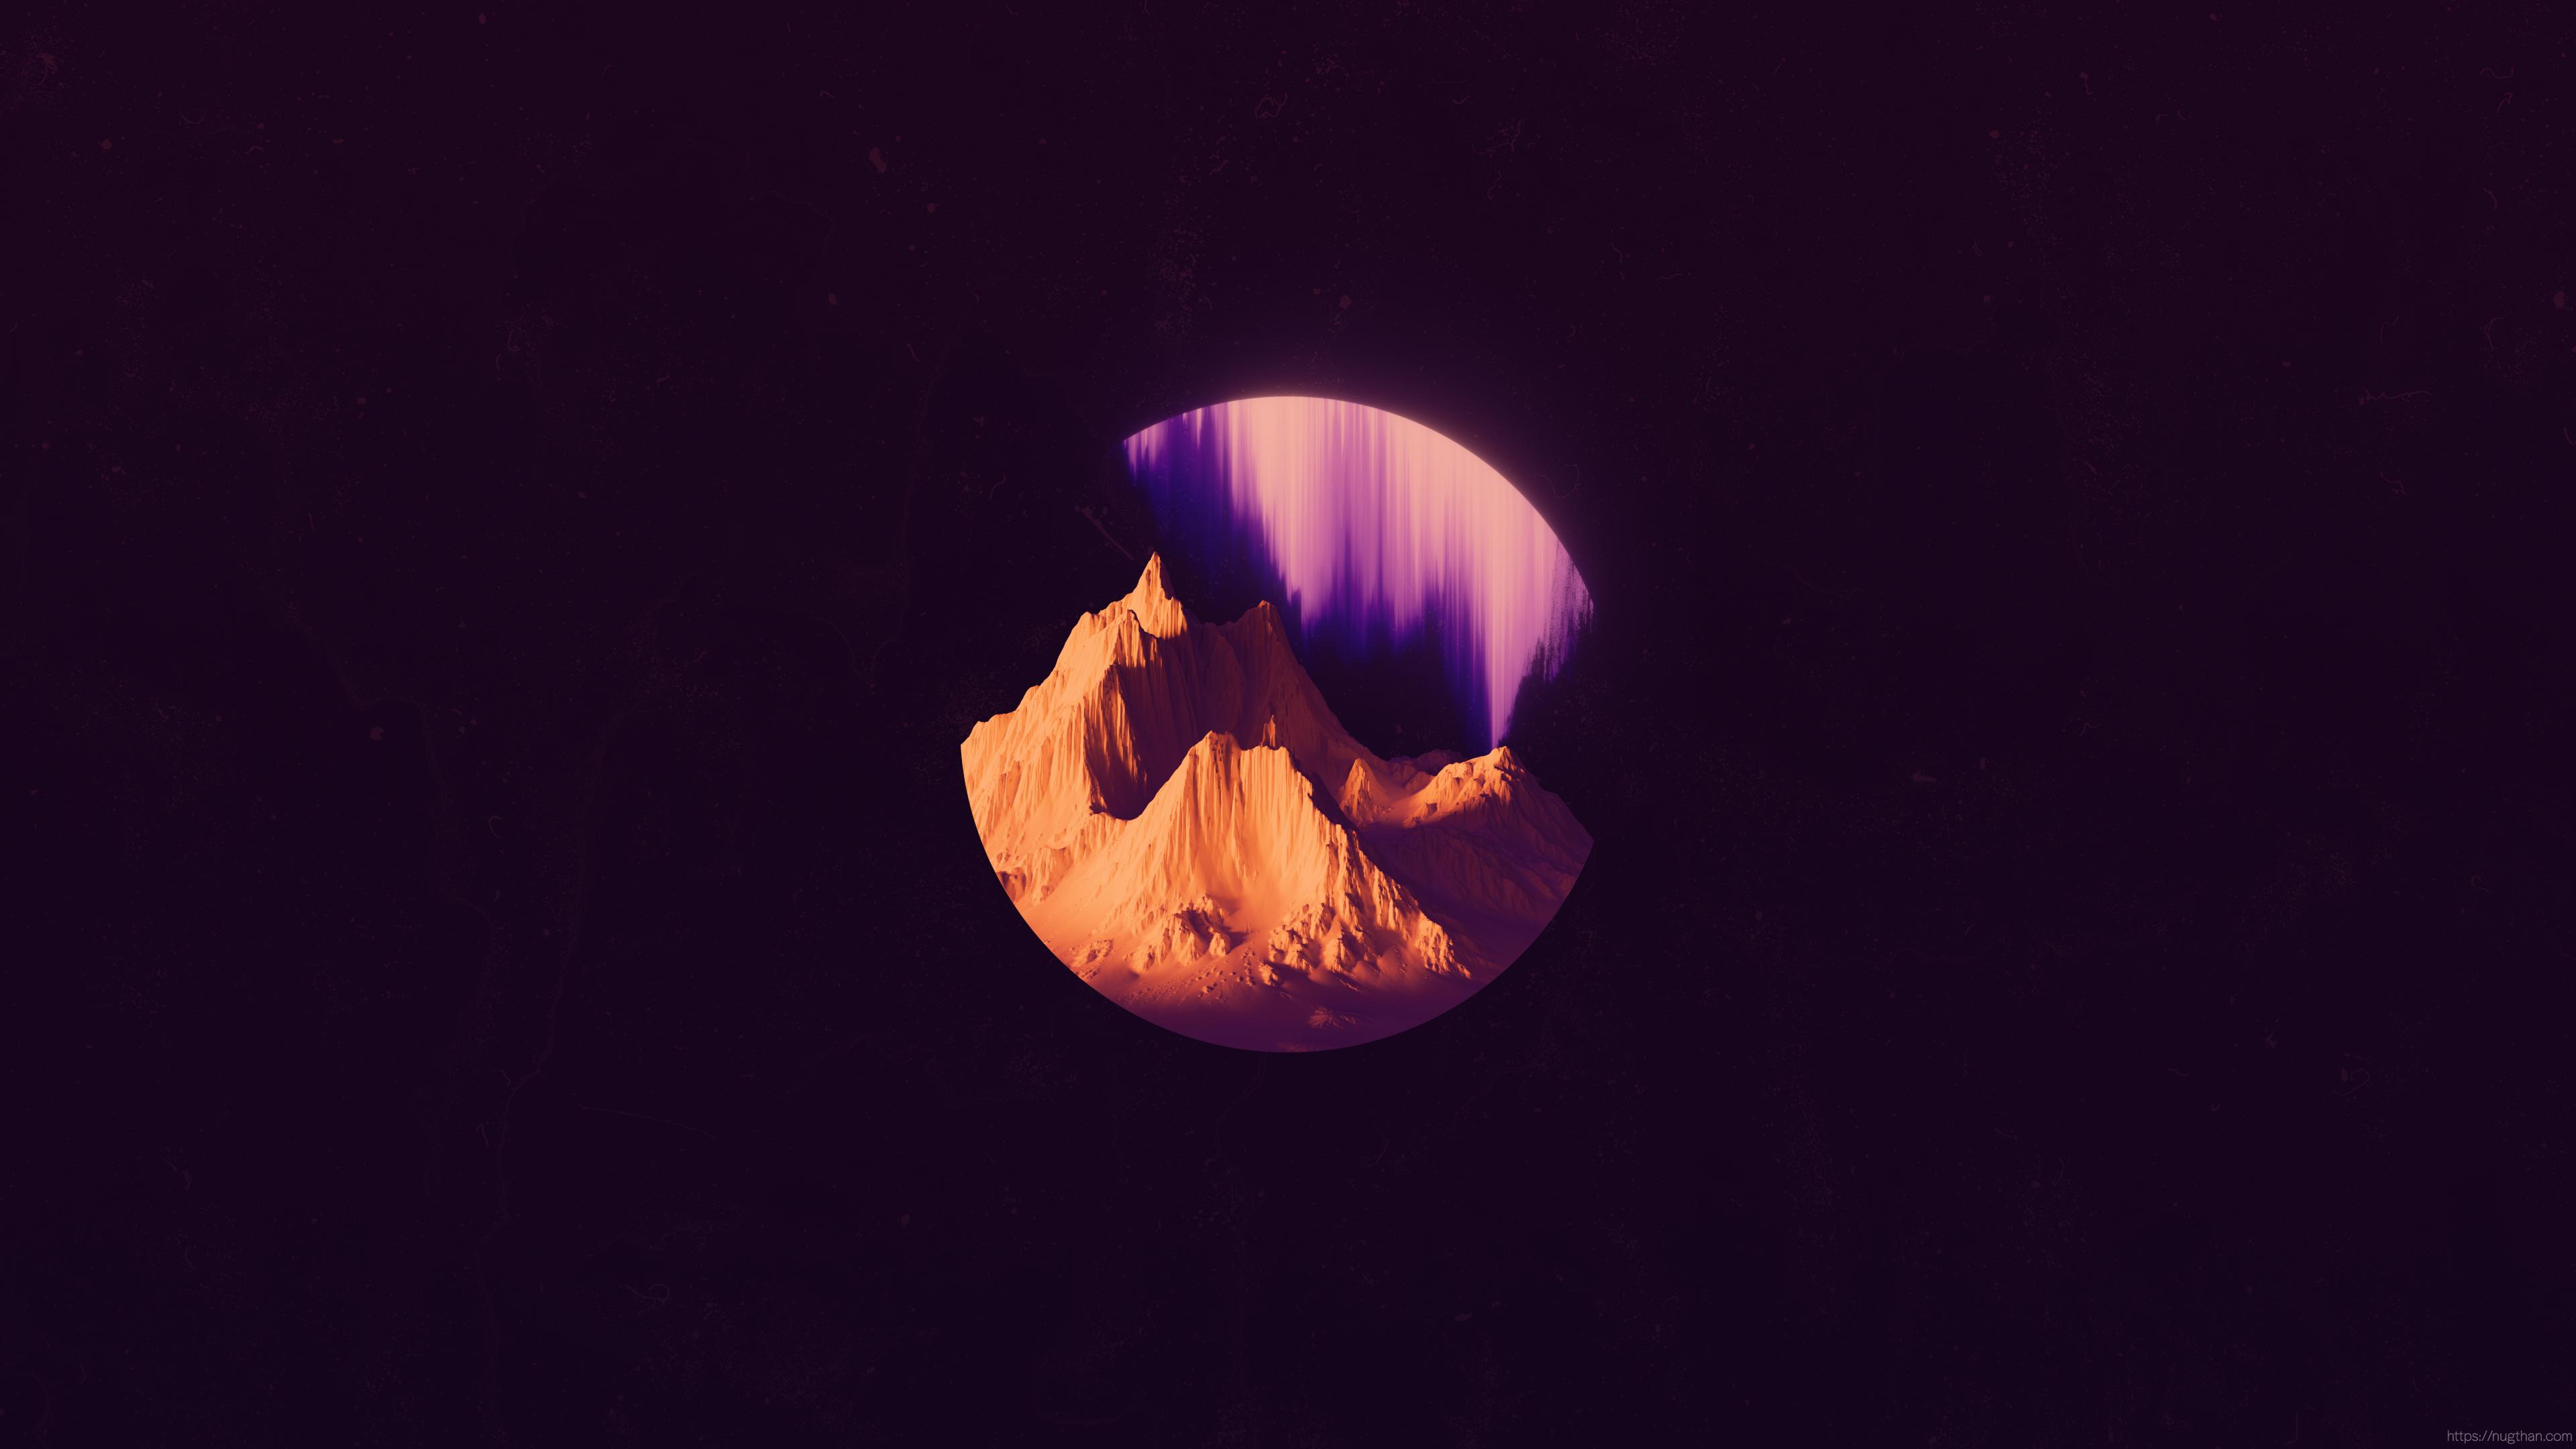 General 3840x2160 space mountains glitch art minimalism circle purple background